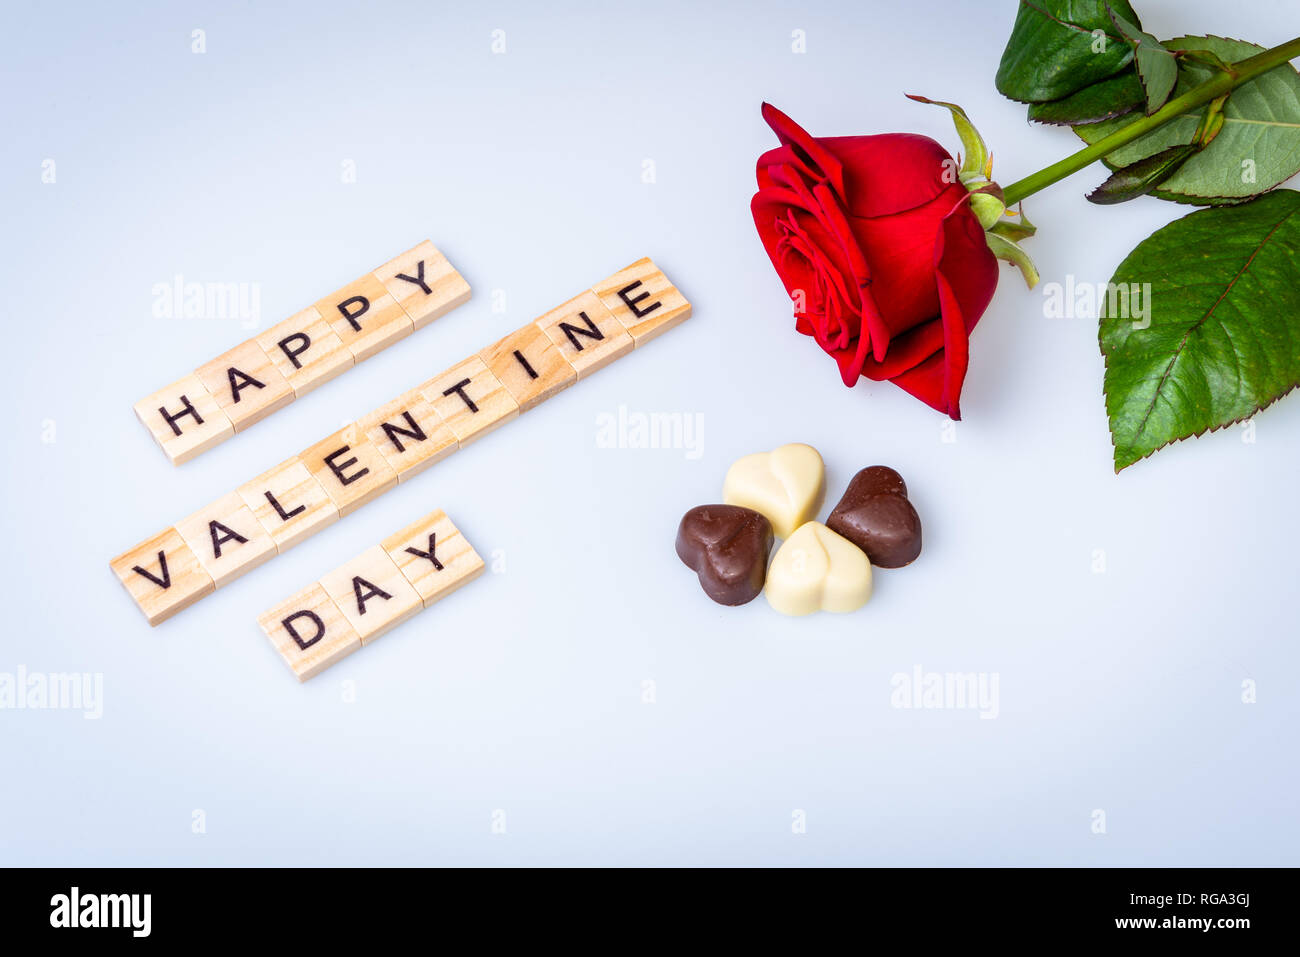 Happy Valentine day with red rose on white background with four chocolate hearts - Stock Image